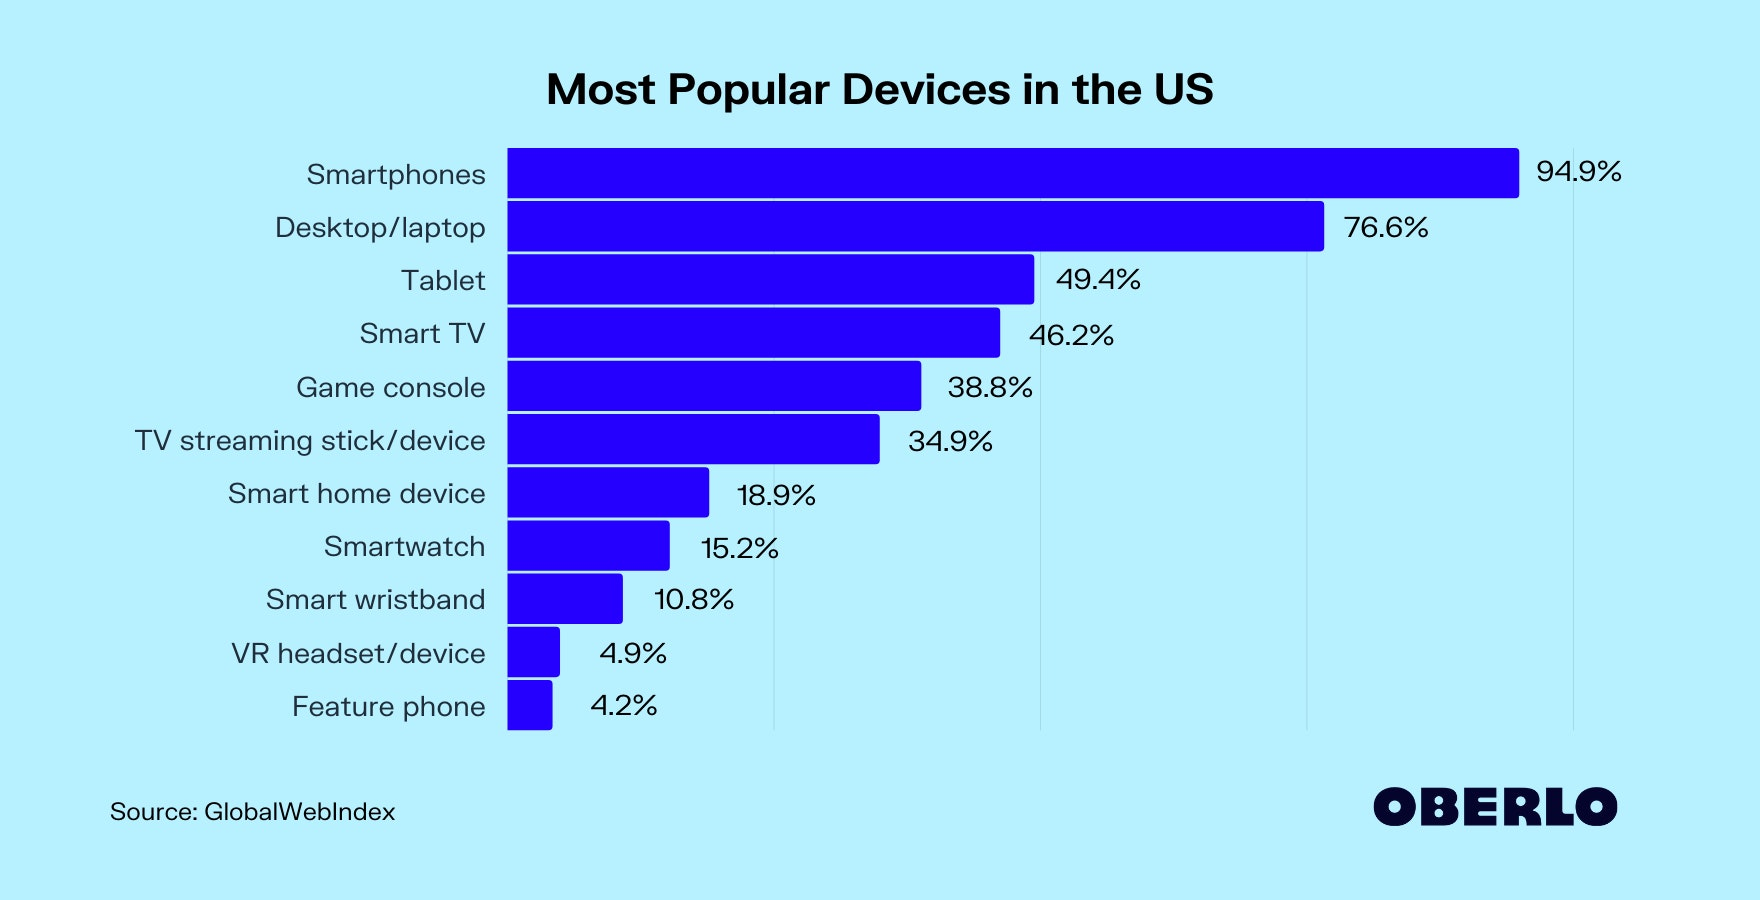 Most Popular Devices in the US